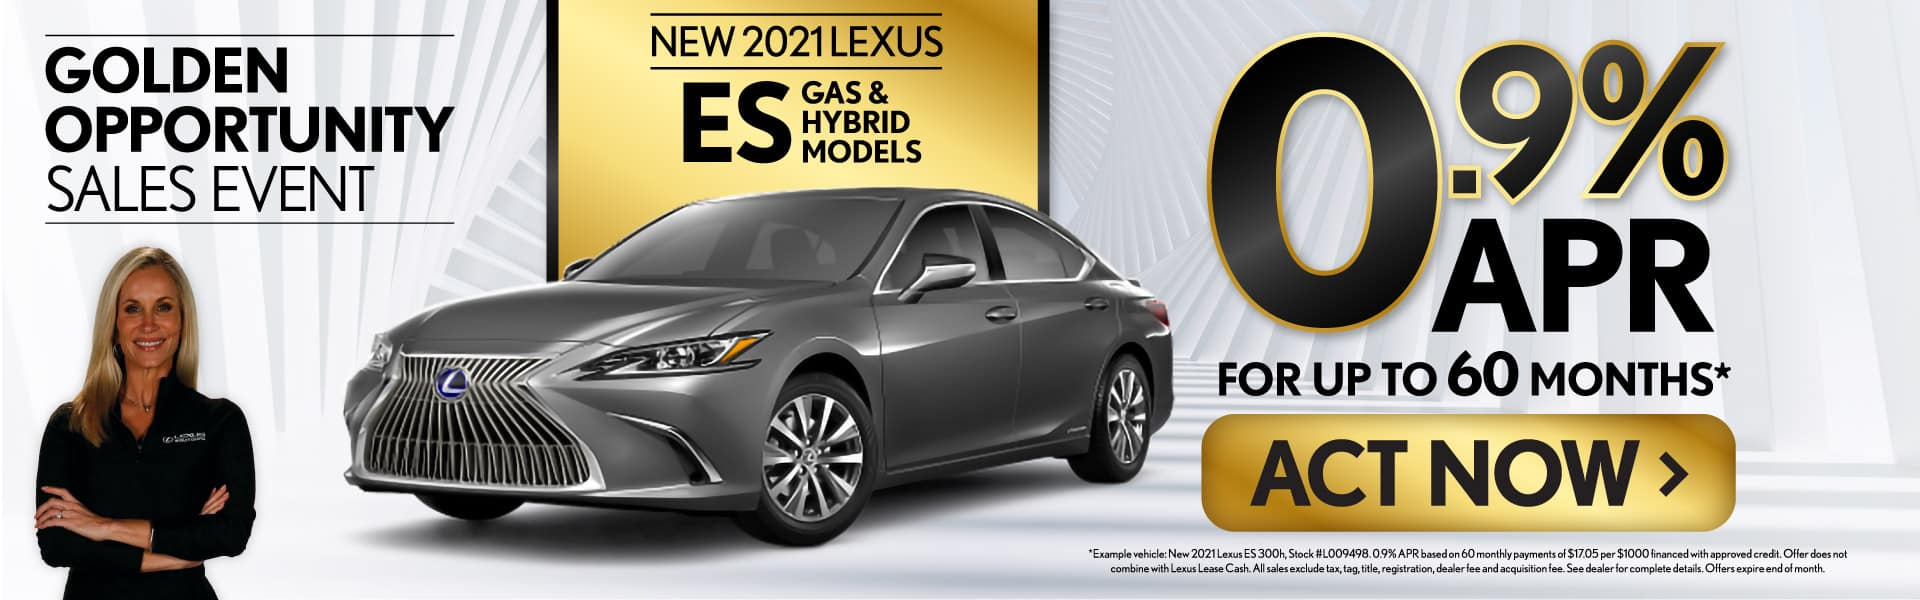 0.9% APR available on New 2021 Lexus ES Gas & Hybrid Models - ACT NOW